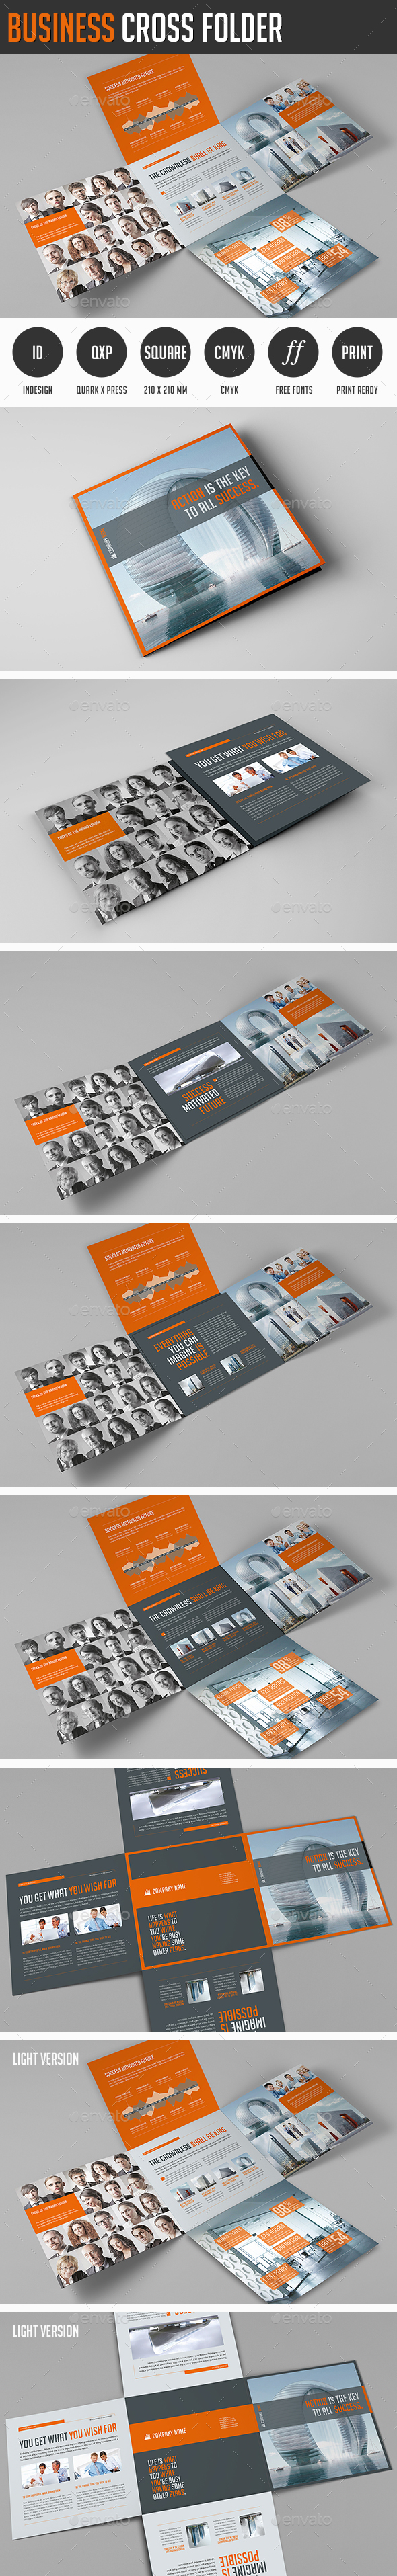 Business Cross Folder - Corporate Flyers